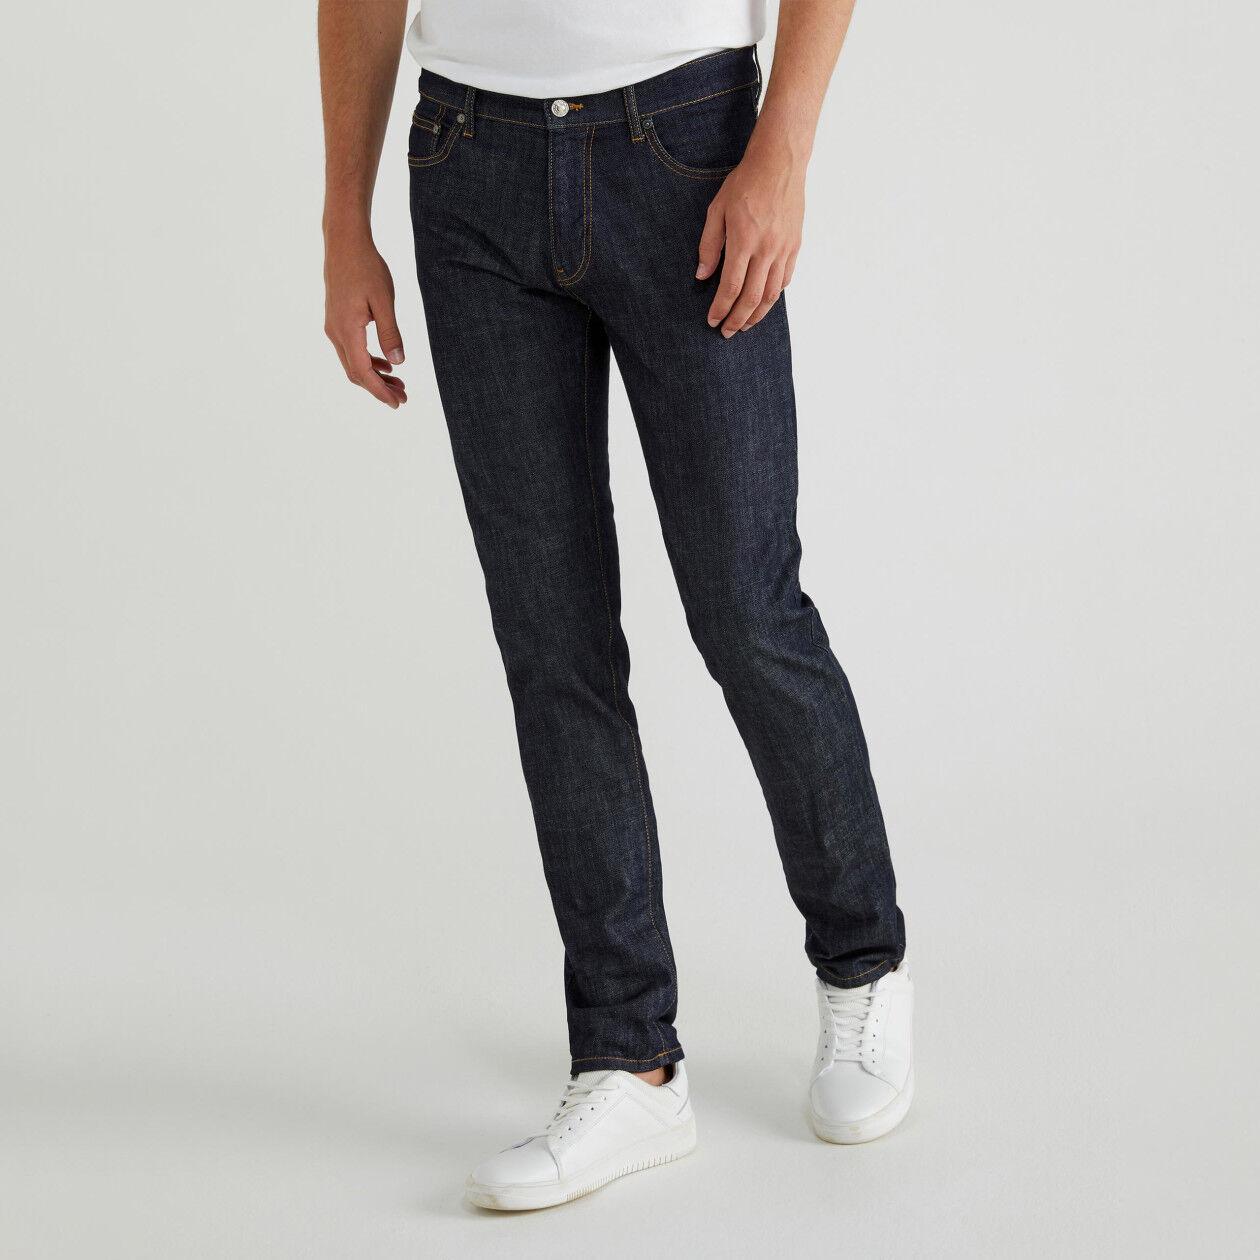 Five pocket jeans